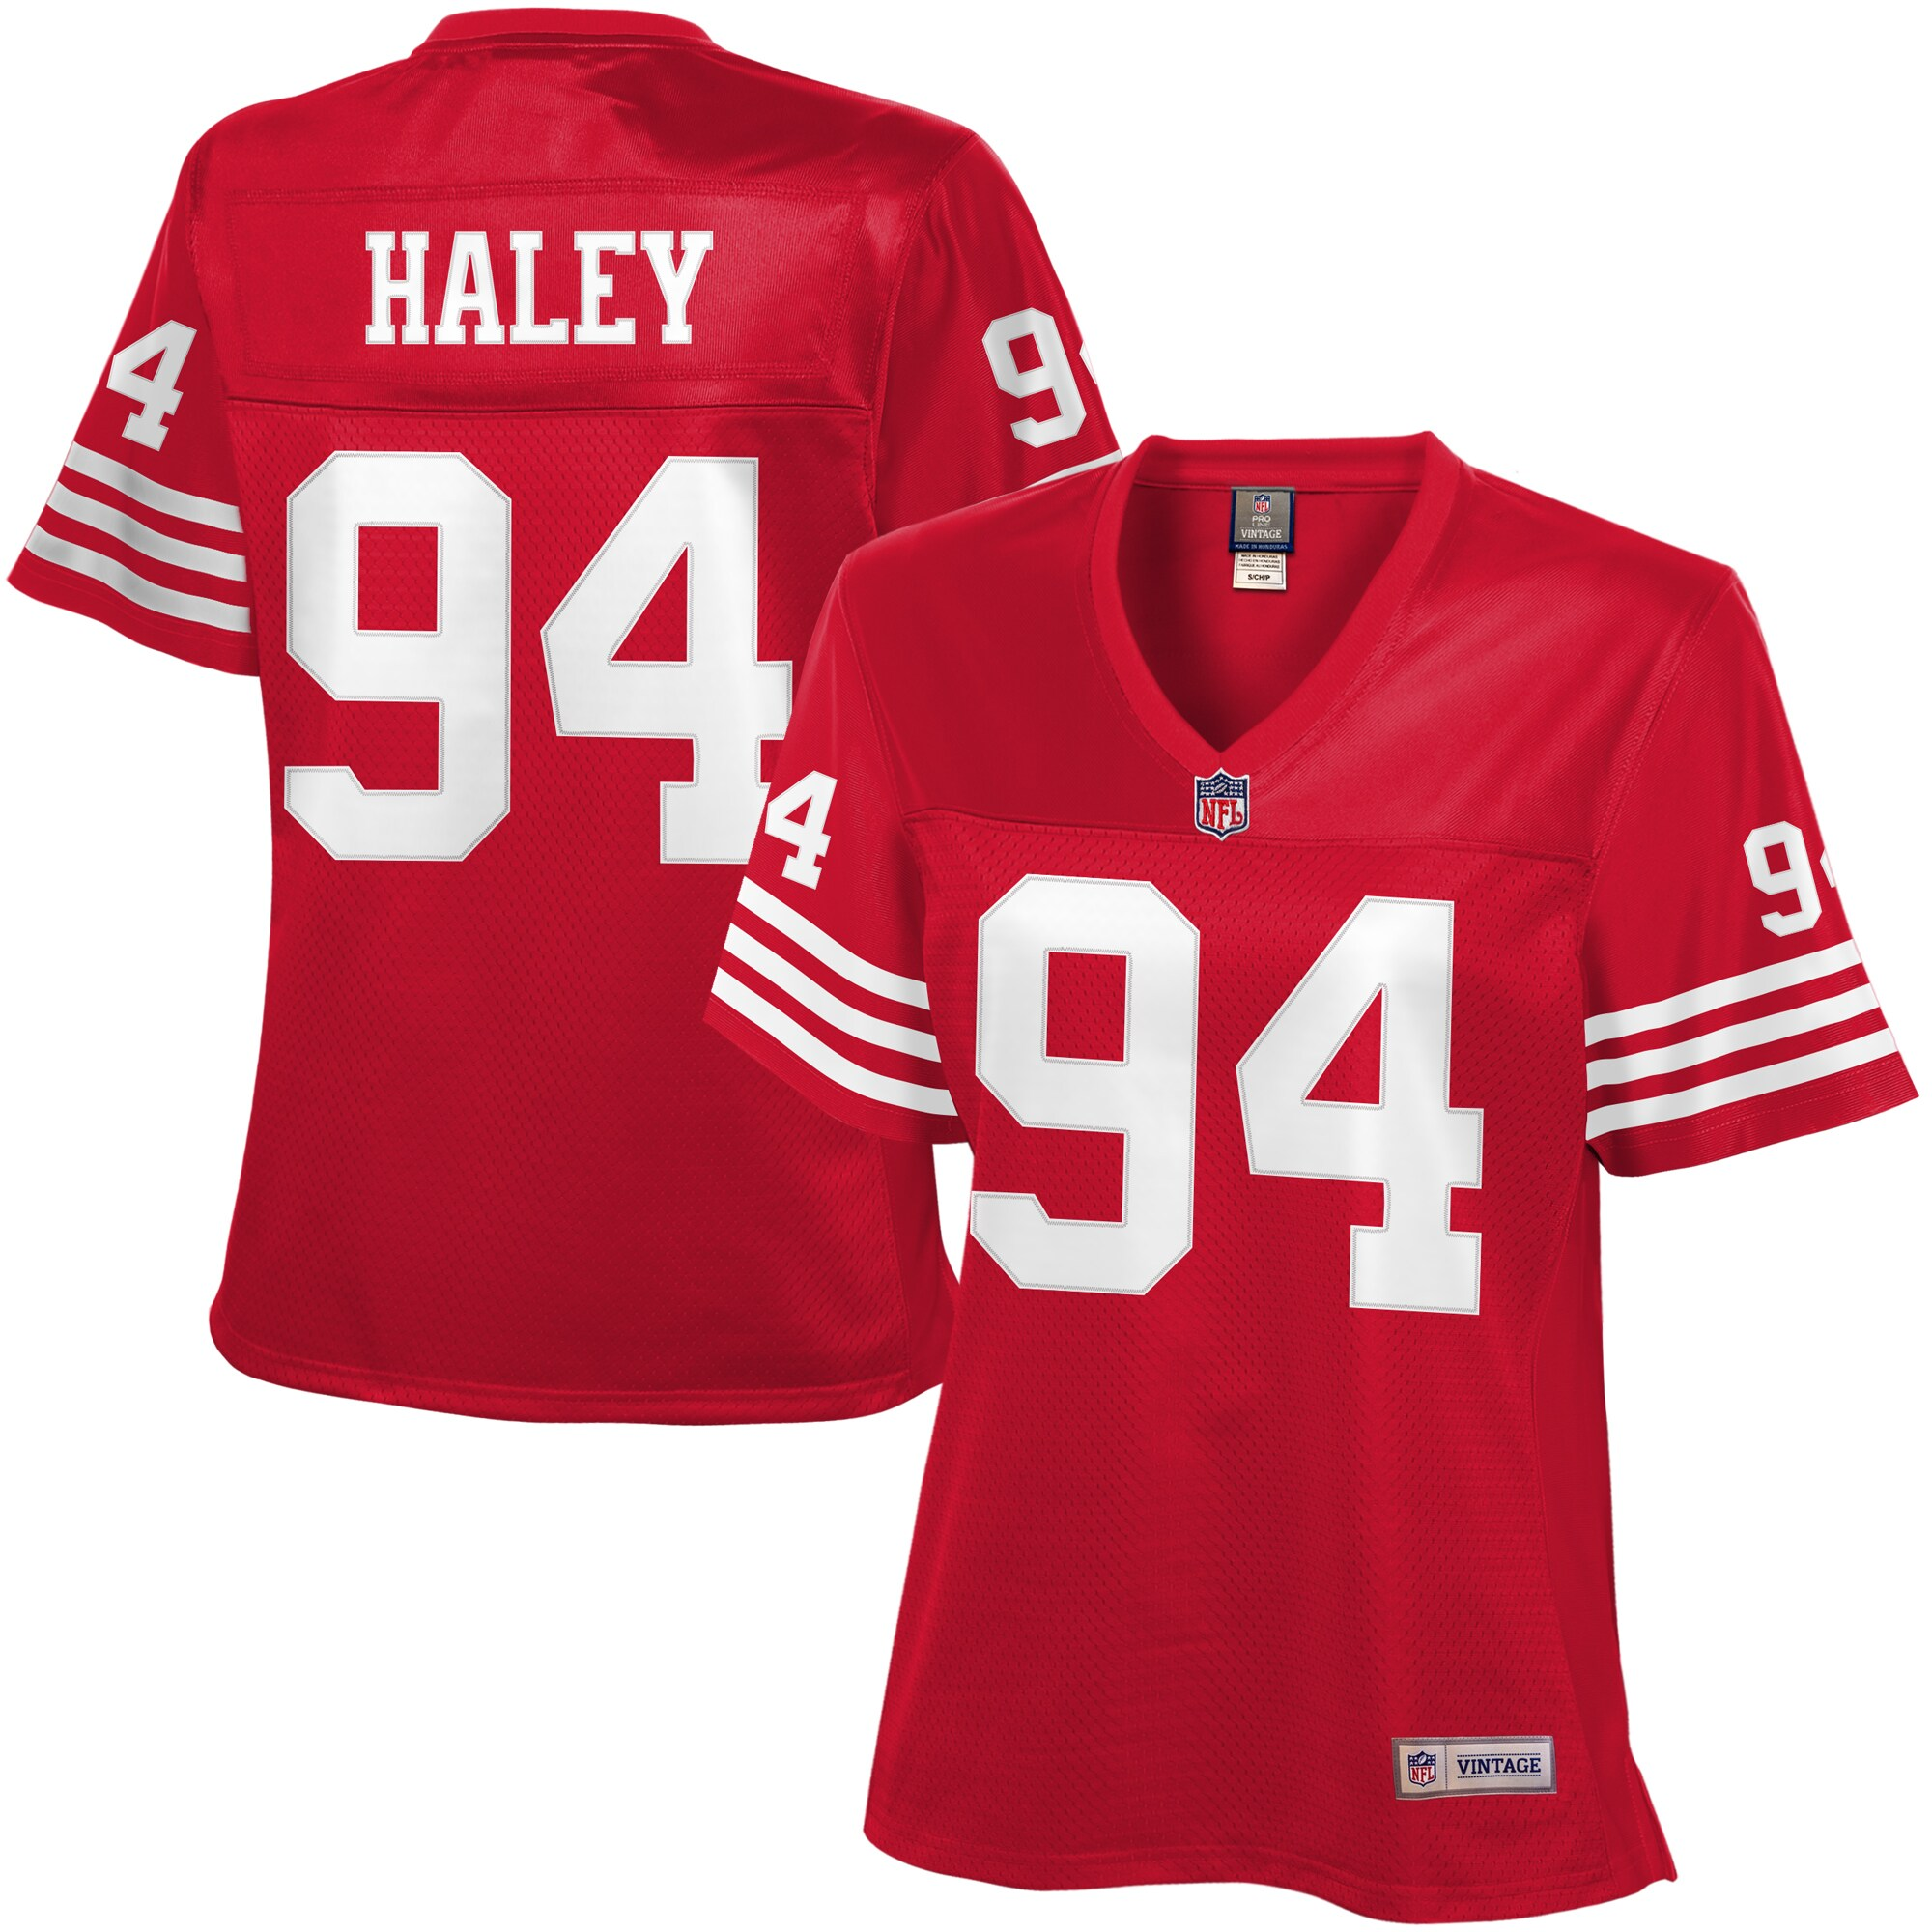 Charles Haley San Francisco 49ers NFL Pro Line Women's Retired Player Jersey - Scarlet